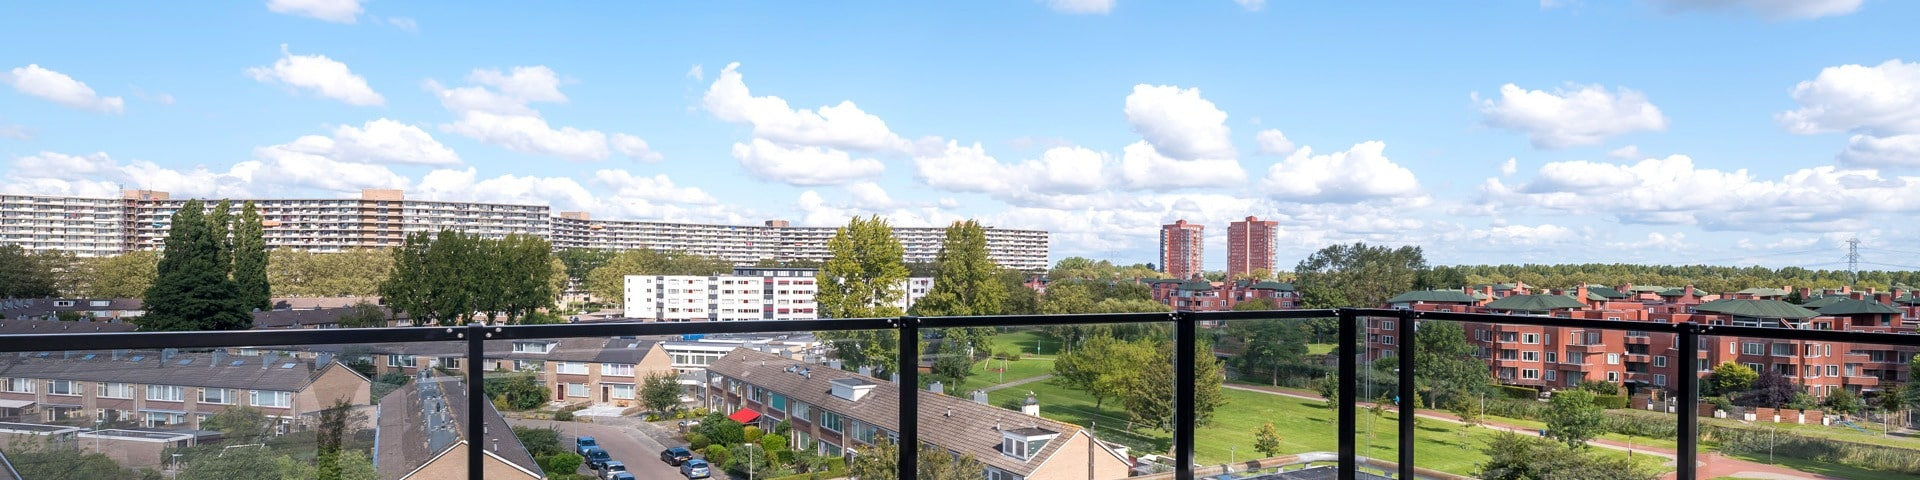 view from The Sparkle over Capelle aan den IJssel